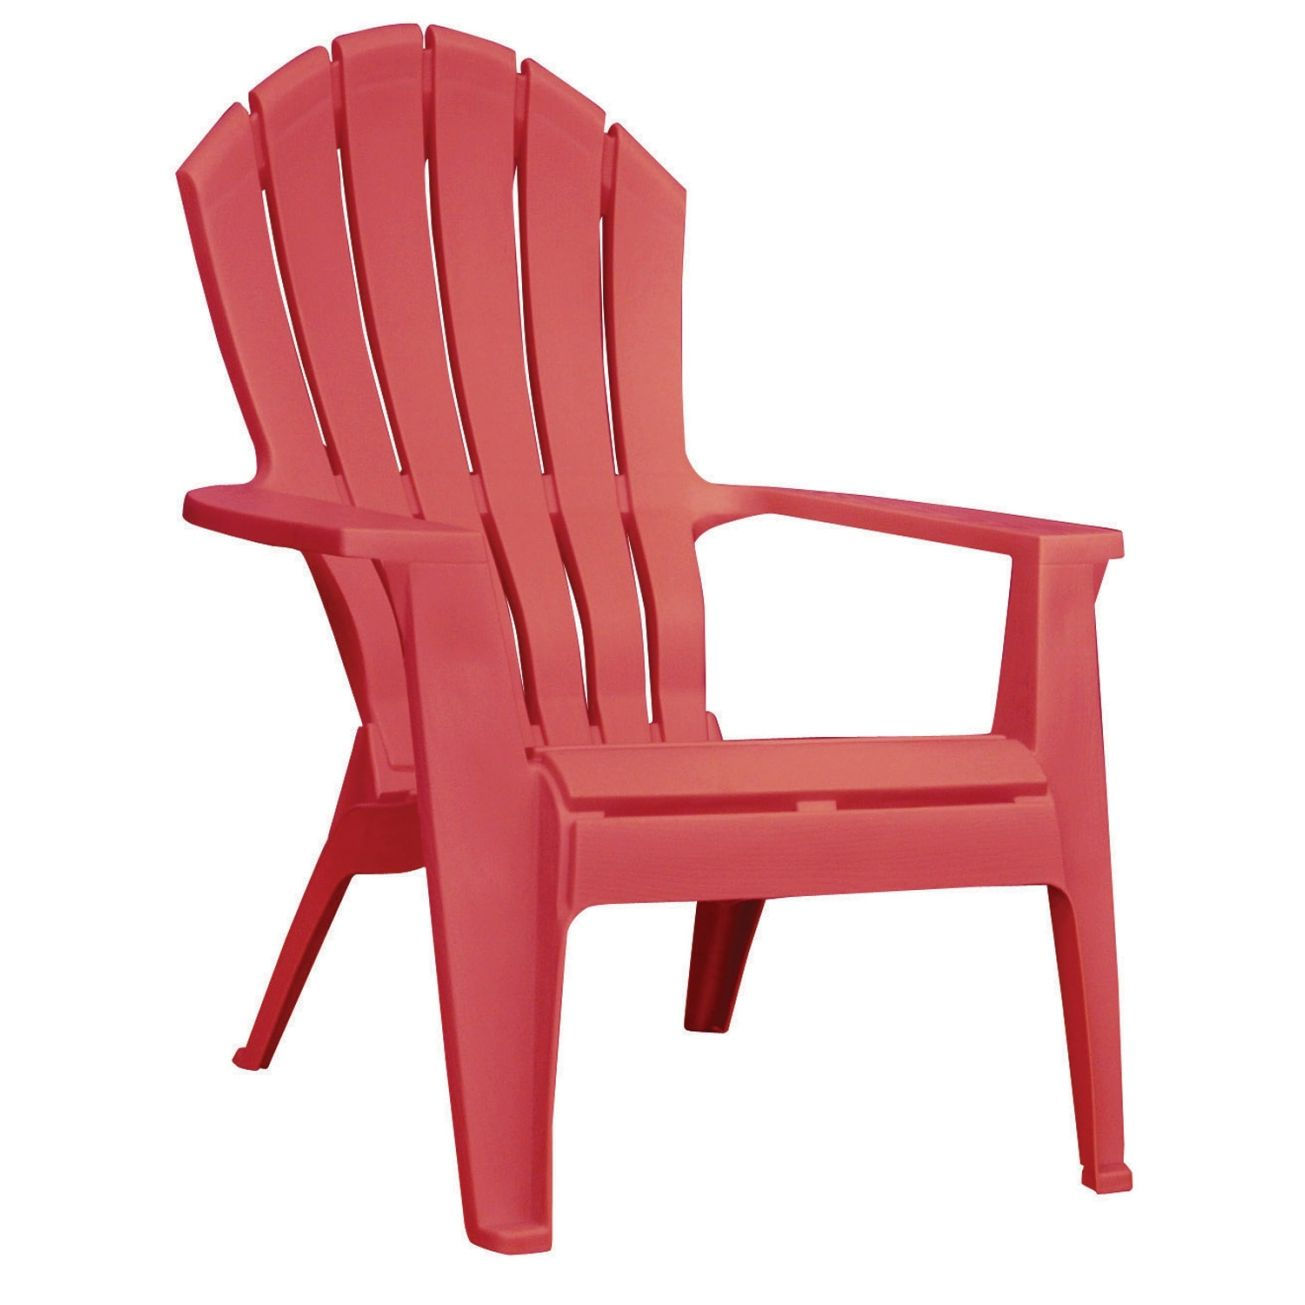 Adams Mfg Corp Red Resin Stackable Patio Adirondack Chair With At Lowe S Realcomfort Represents The First Major